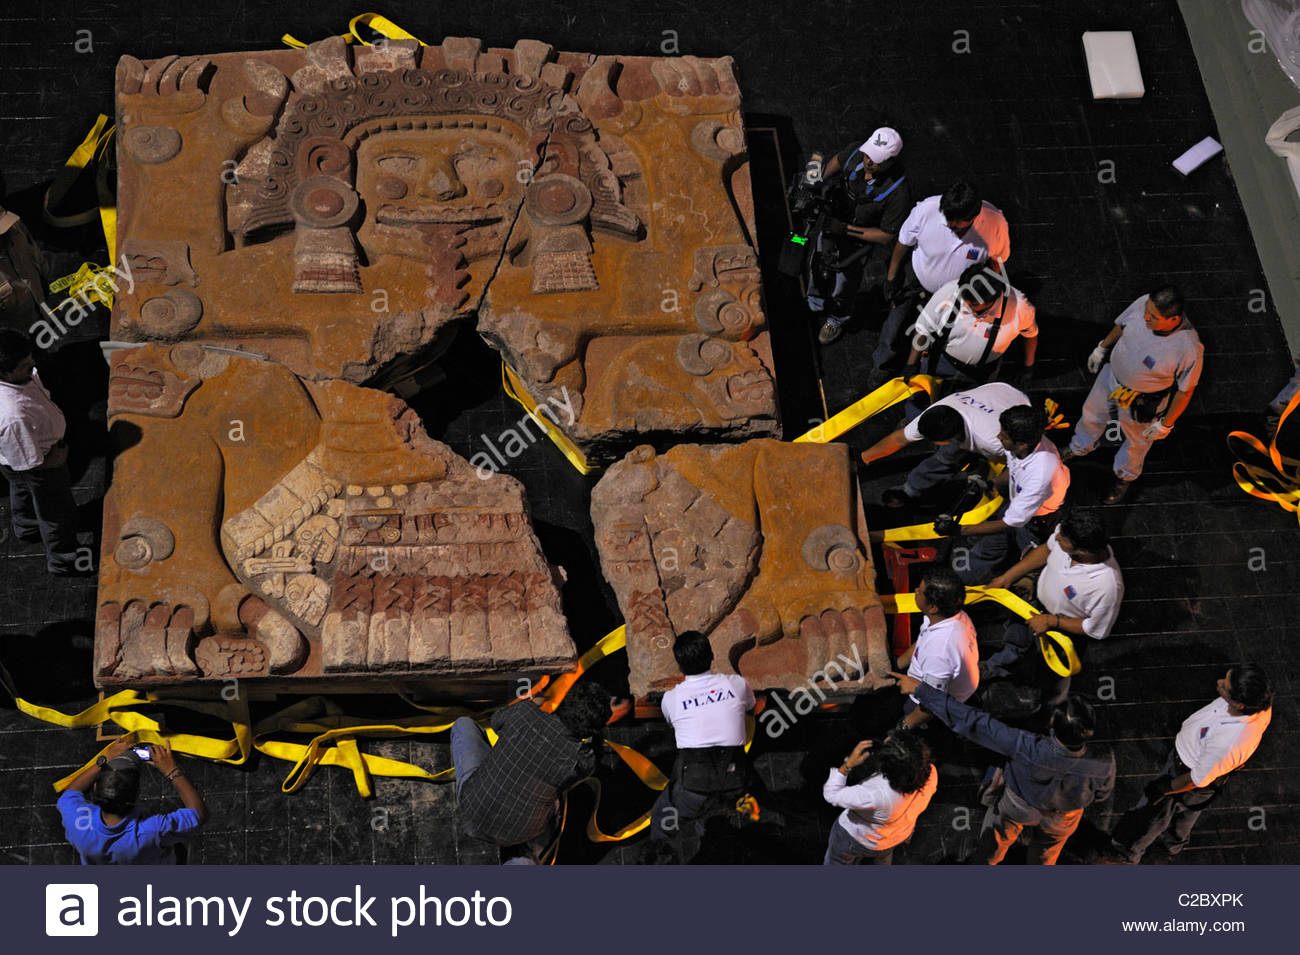 The Tlaltechutli Stone is moved from the excavation site to a museum. - Stock Image